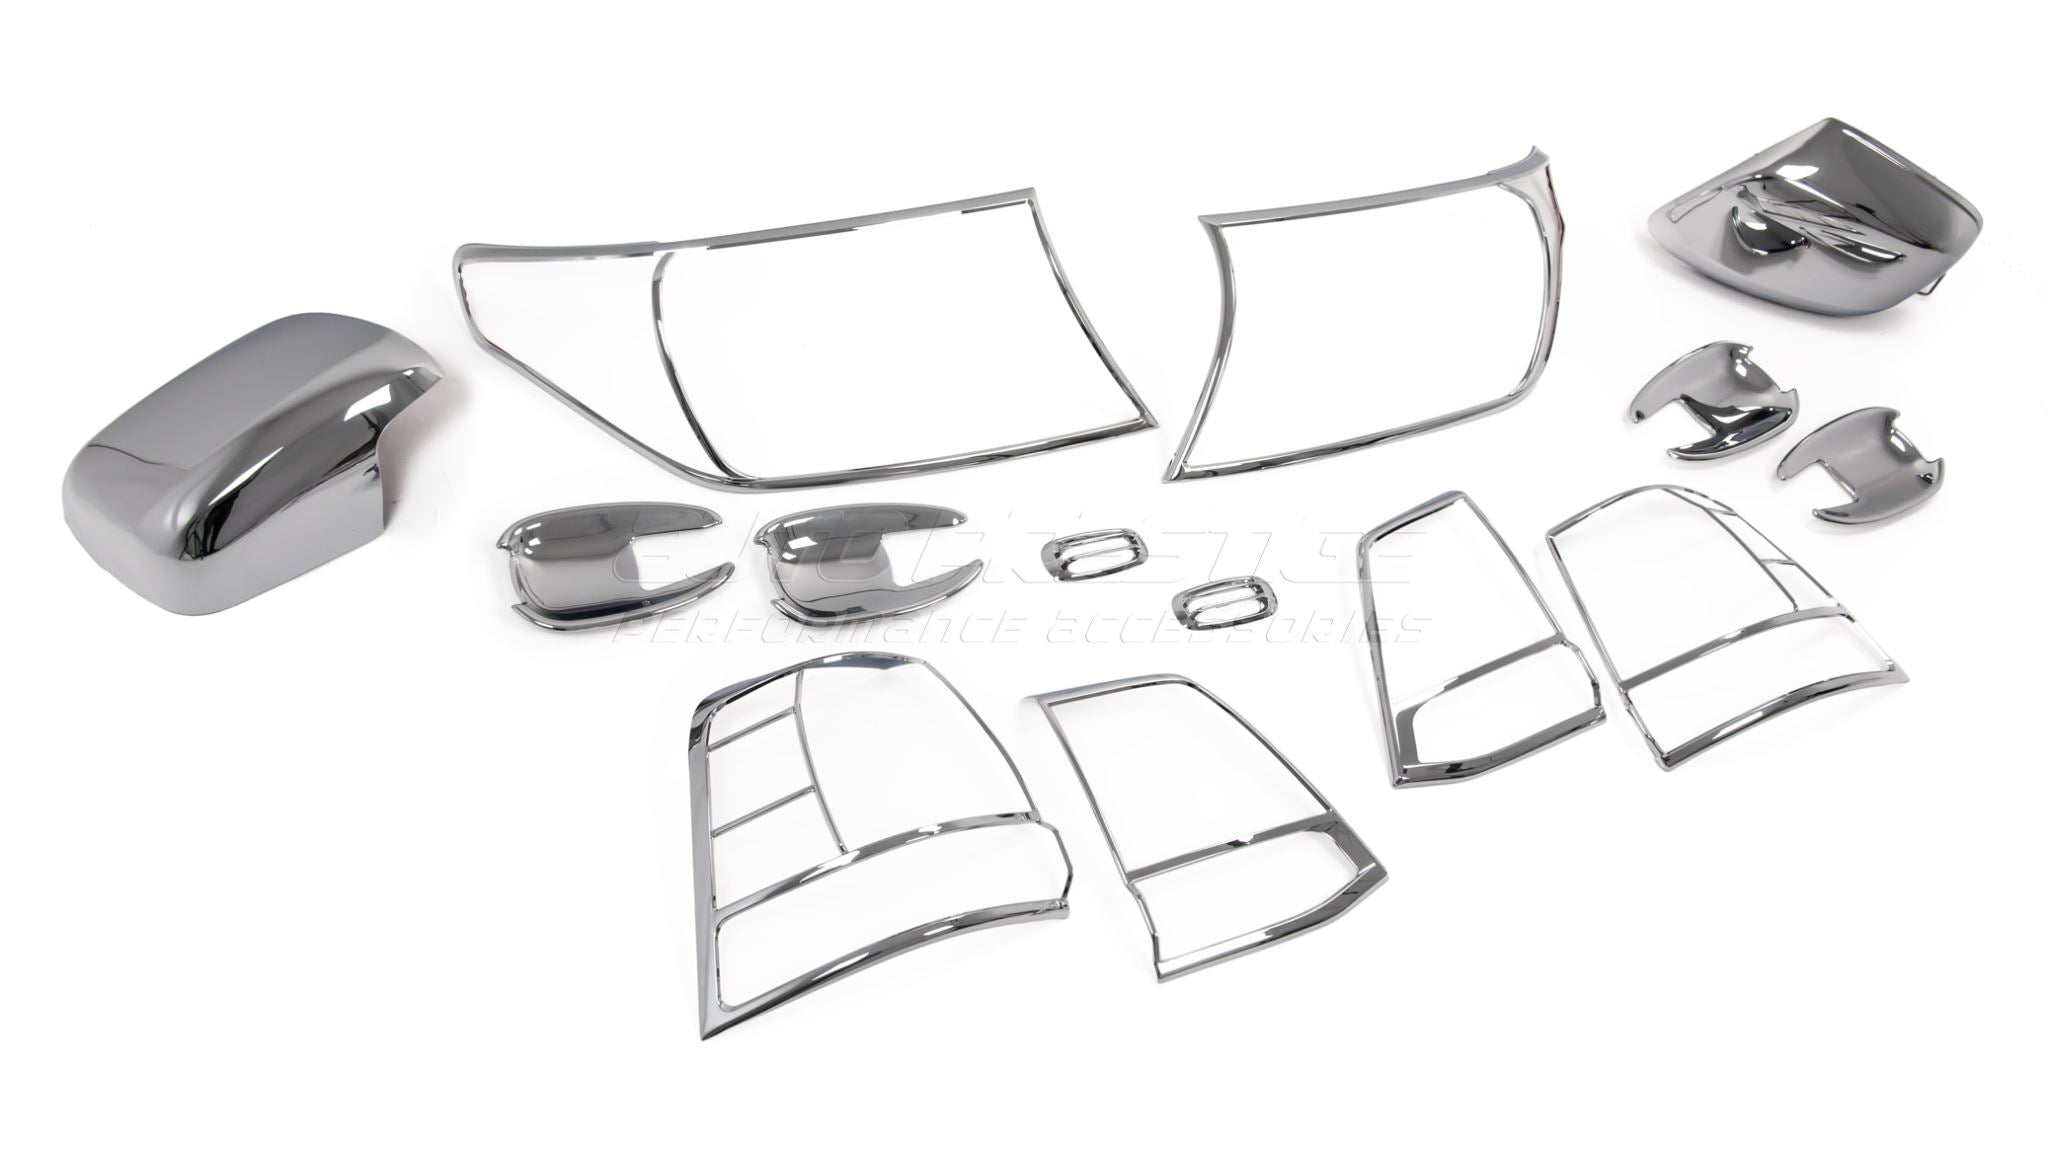 chrome-trims-kit-toyota-land-cruiser-fj-200-series_RWQVQTNS6EFB.jpg